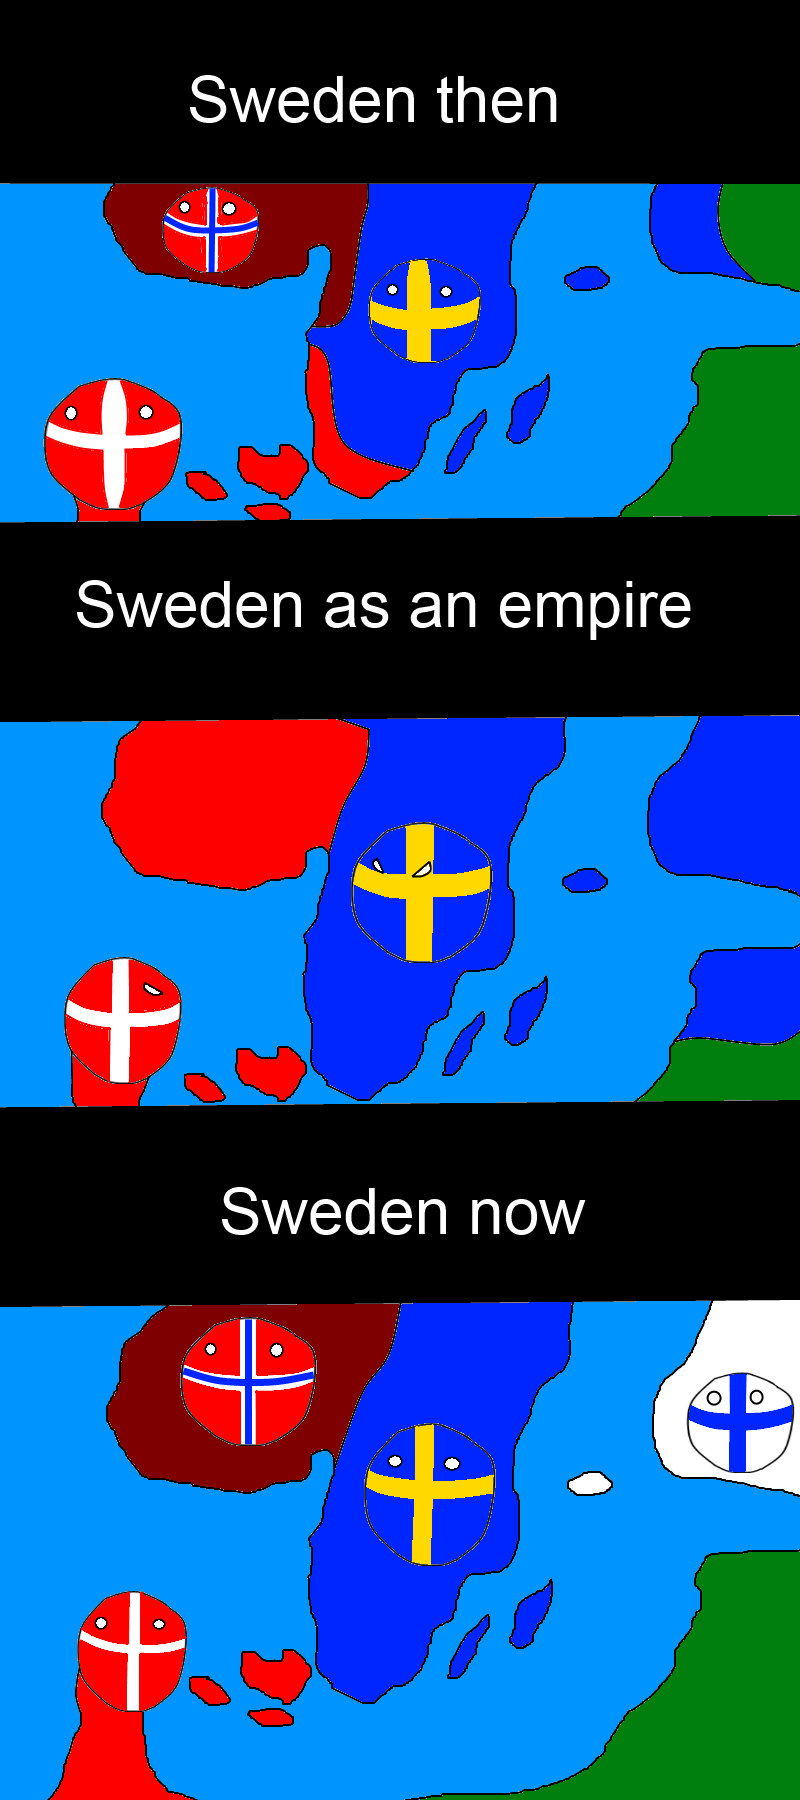 Plik:Sweden then and now.png